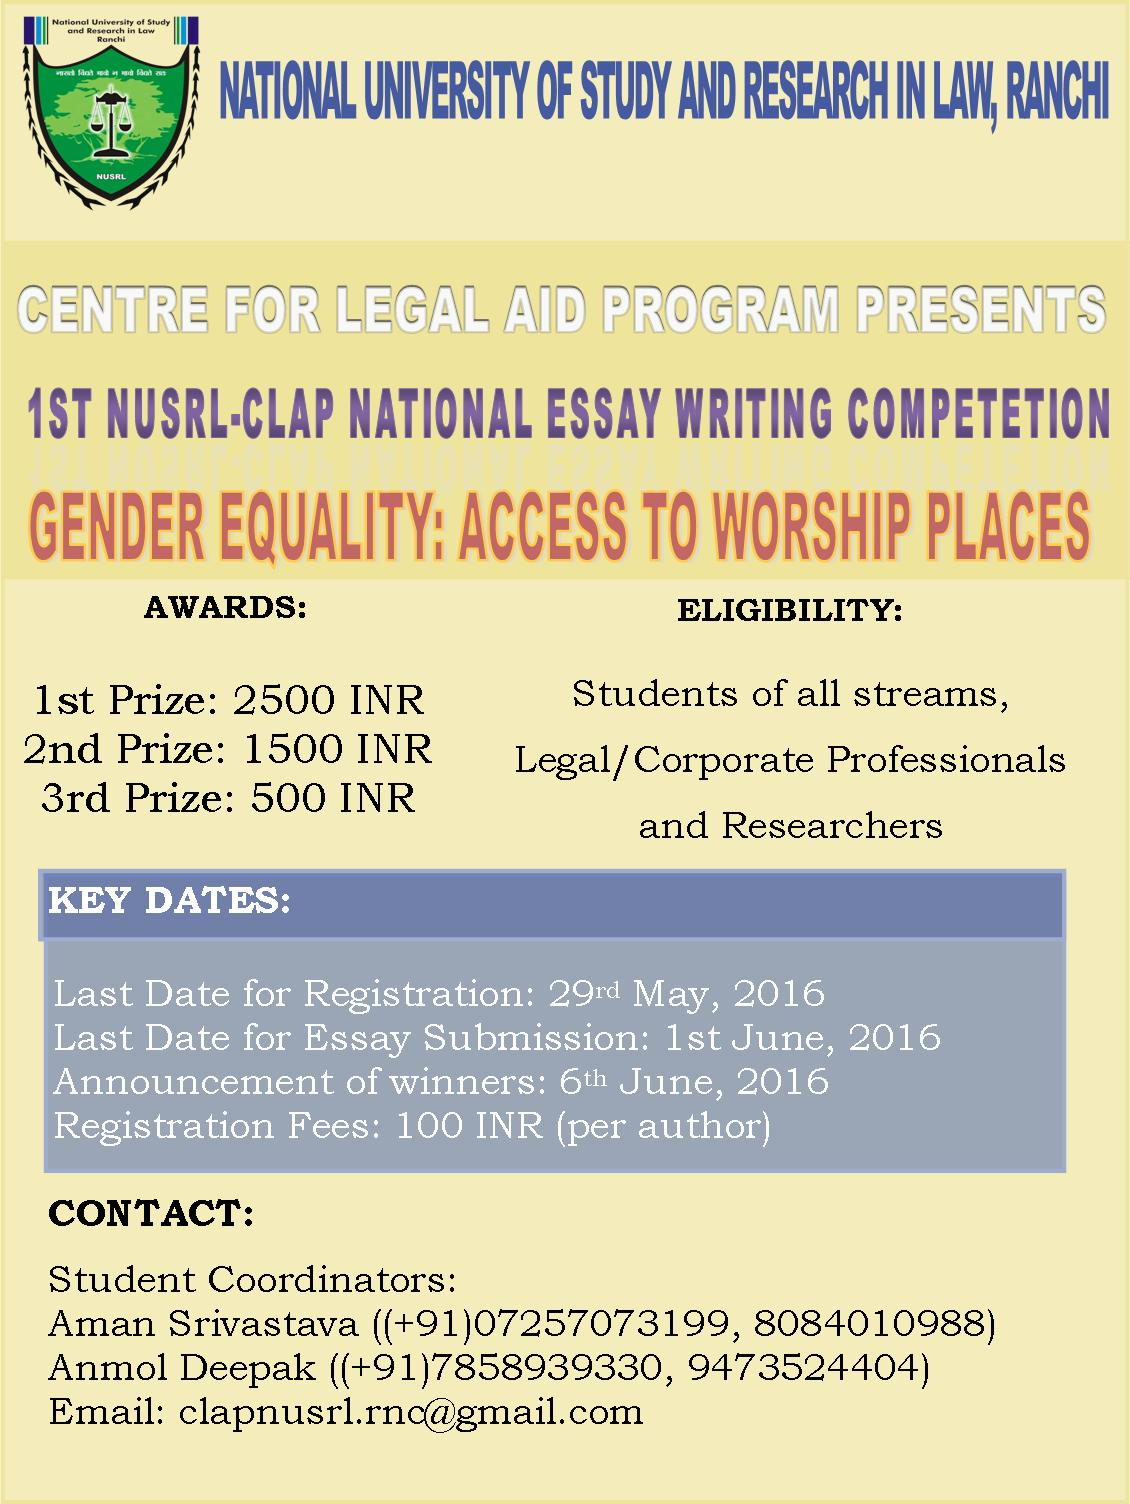 1st NUSRL-CLAP National Socio-Legal Essay Writing Competition on Gender Equality